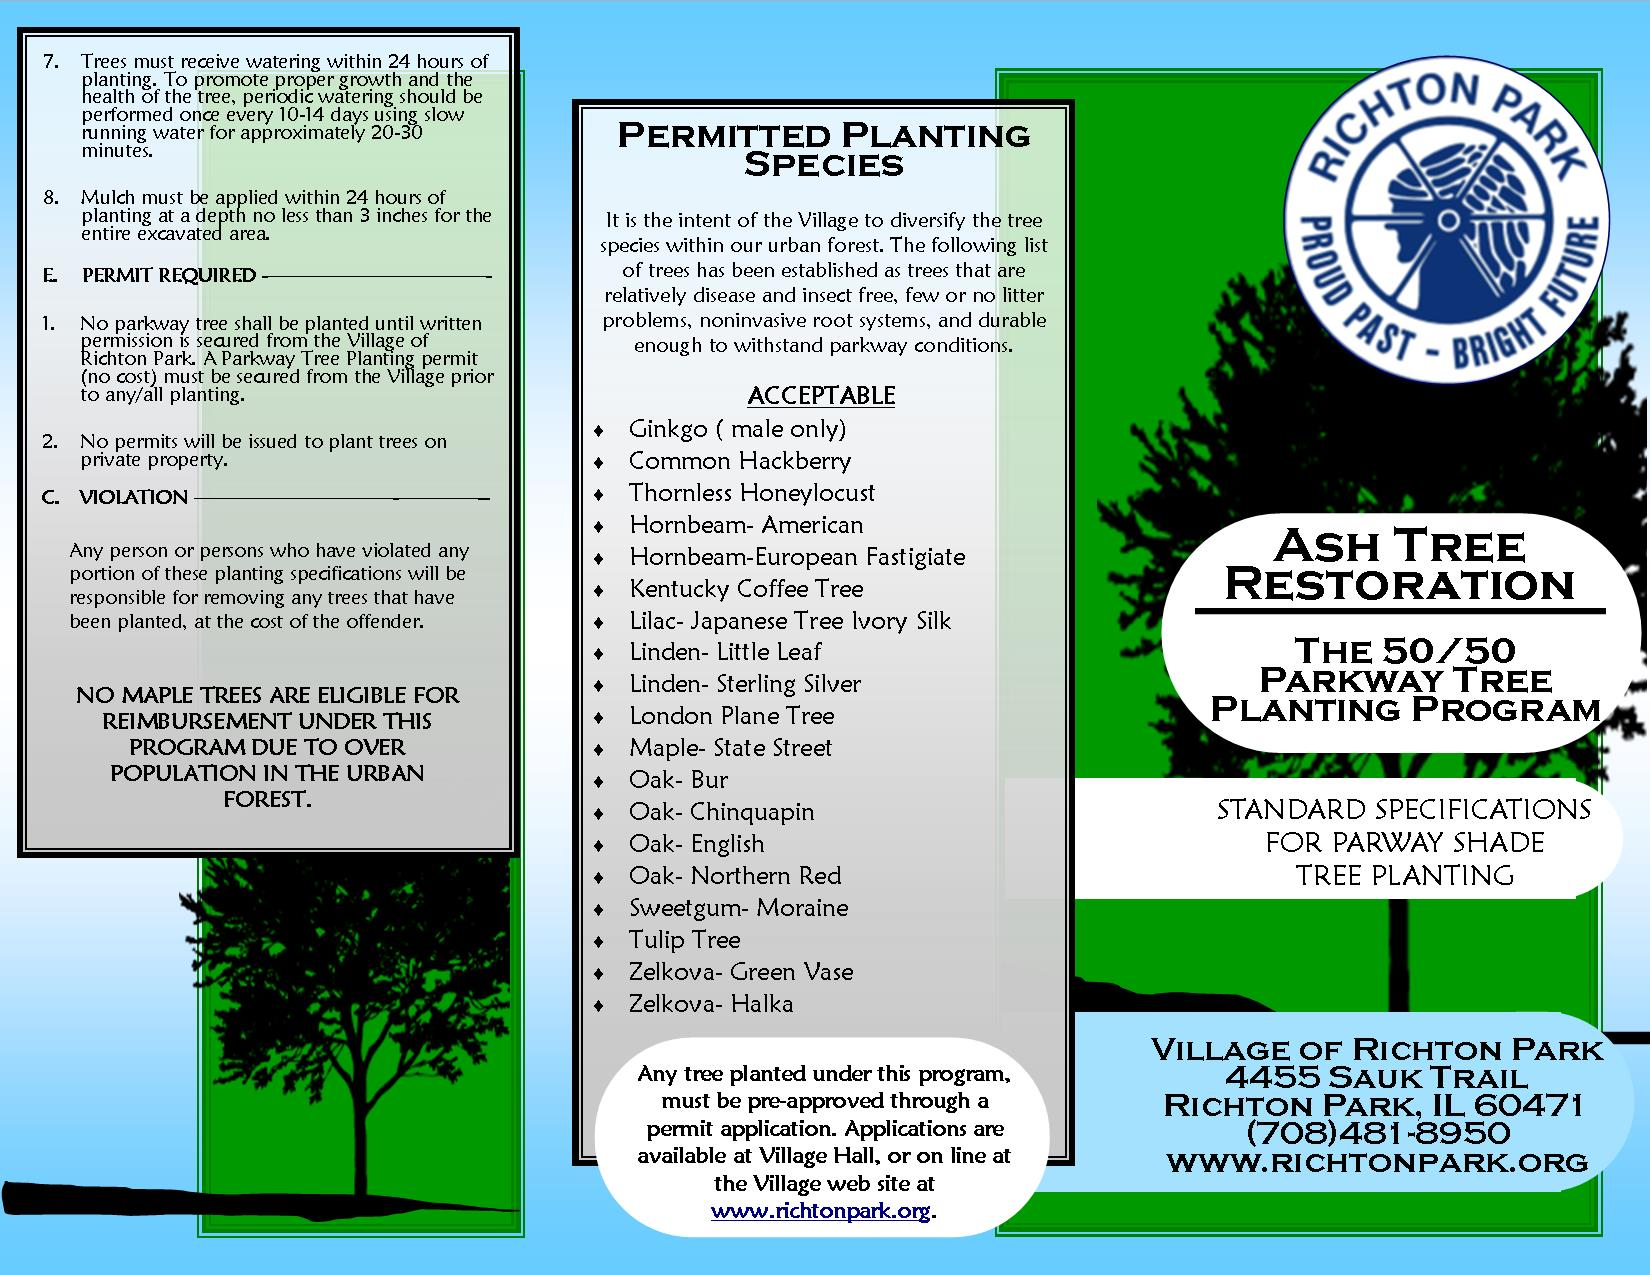 5050 Parkway Tree Planting Program BROCHURE pg 1.jpg